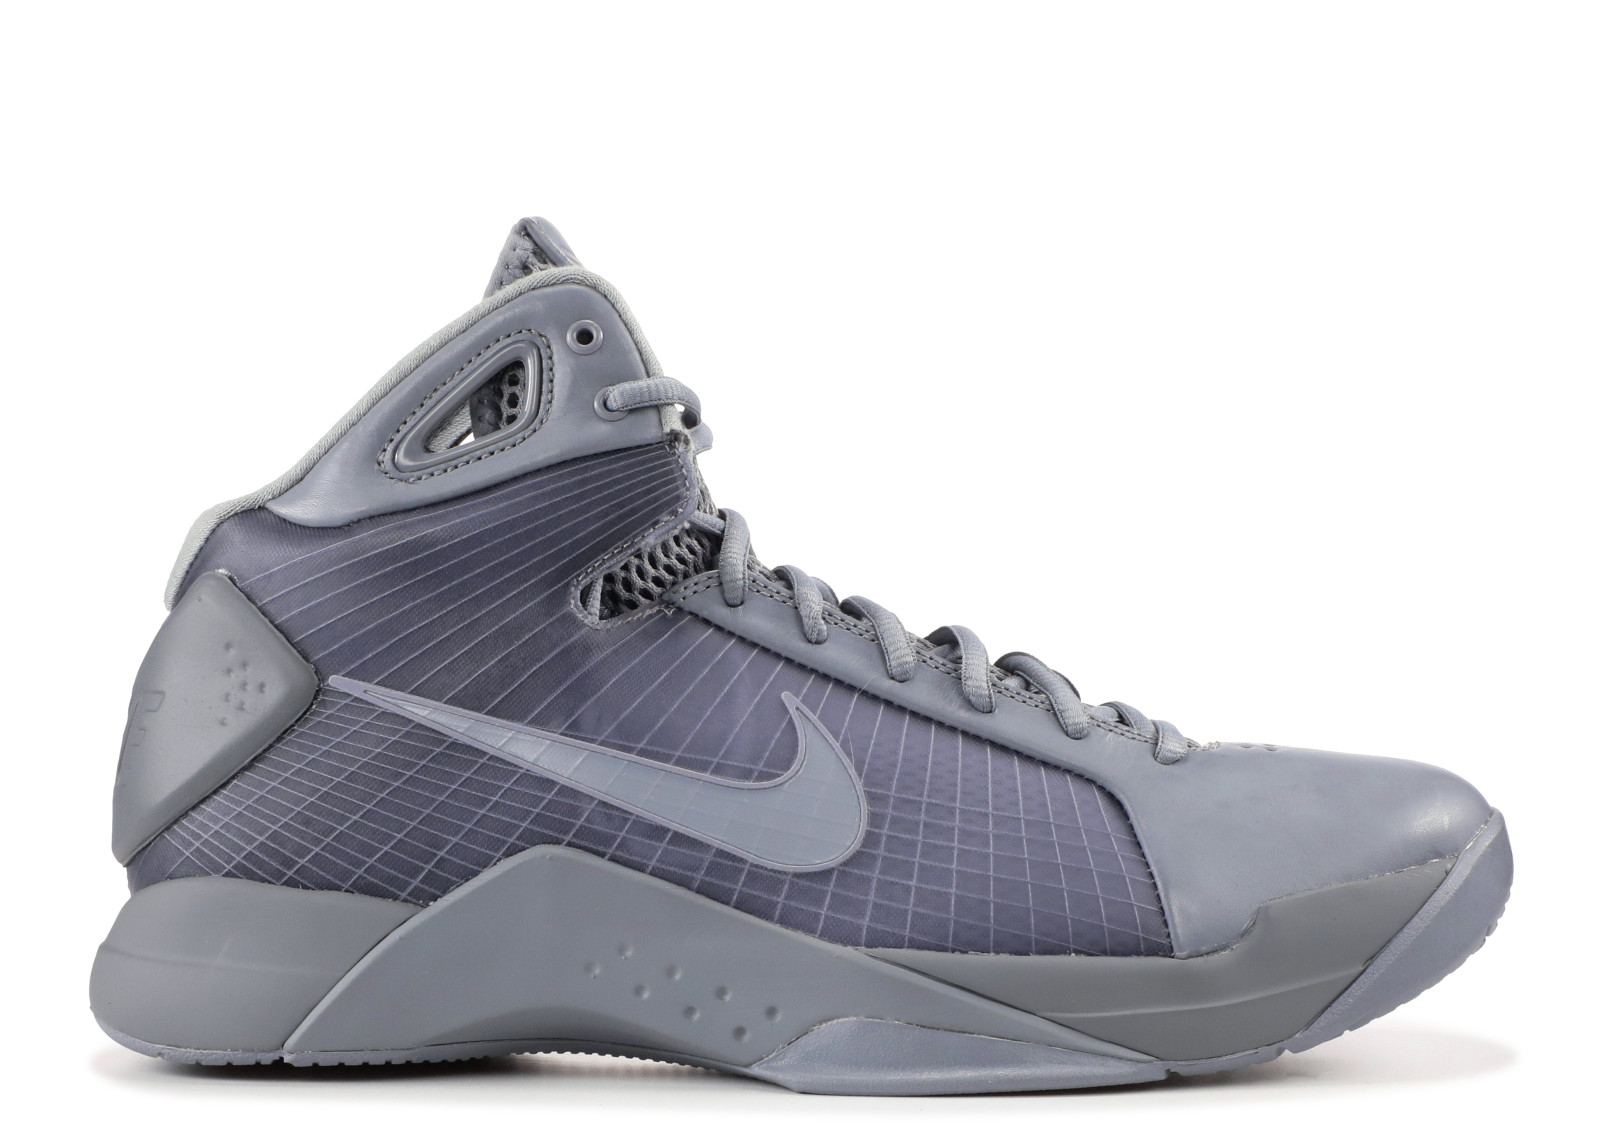 7c1ae8116126 Nike - Men - Hyperdunk 08 Ftb  Fade To Black  - 869611-001 - Size 14 ...